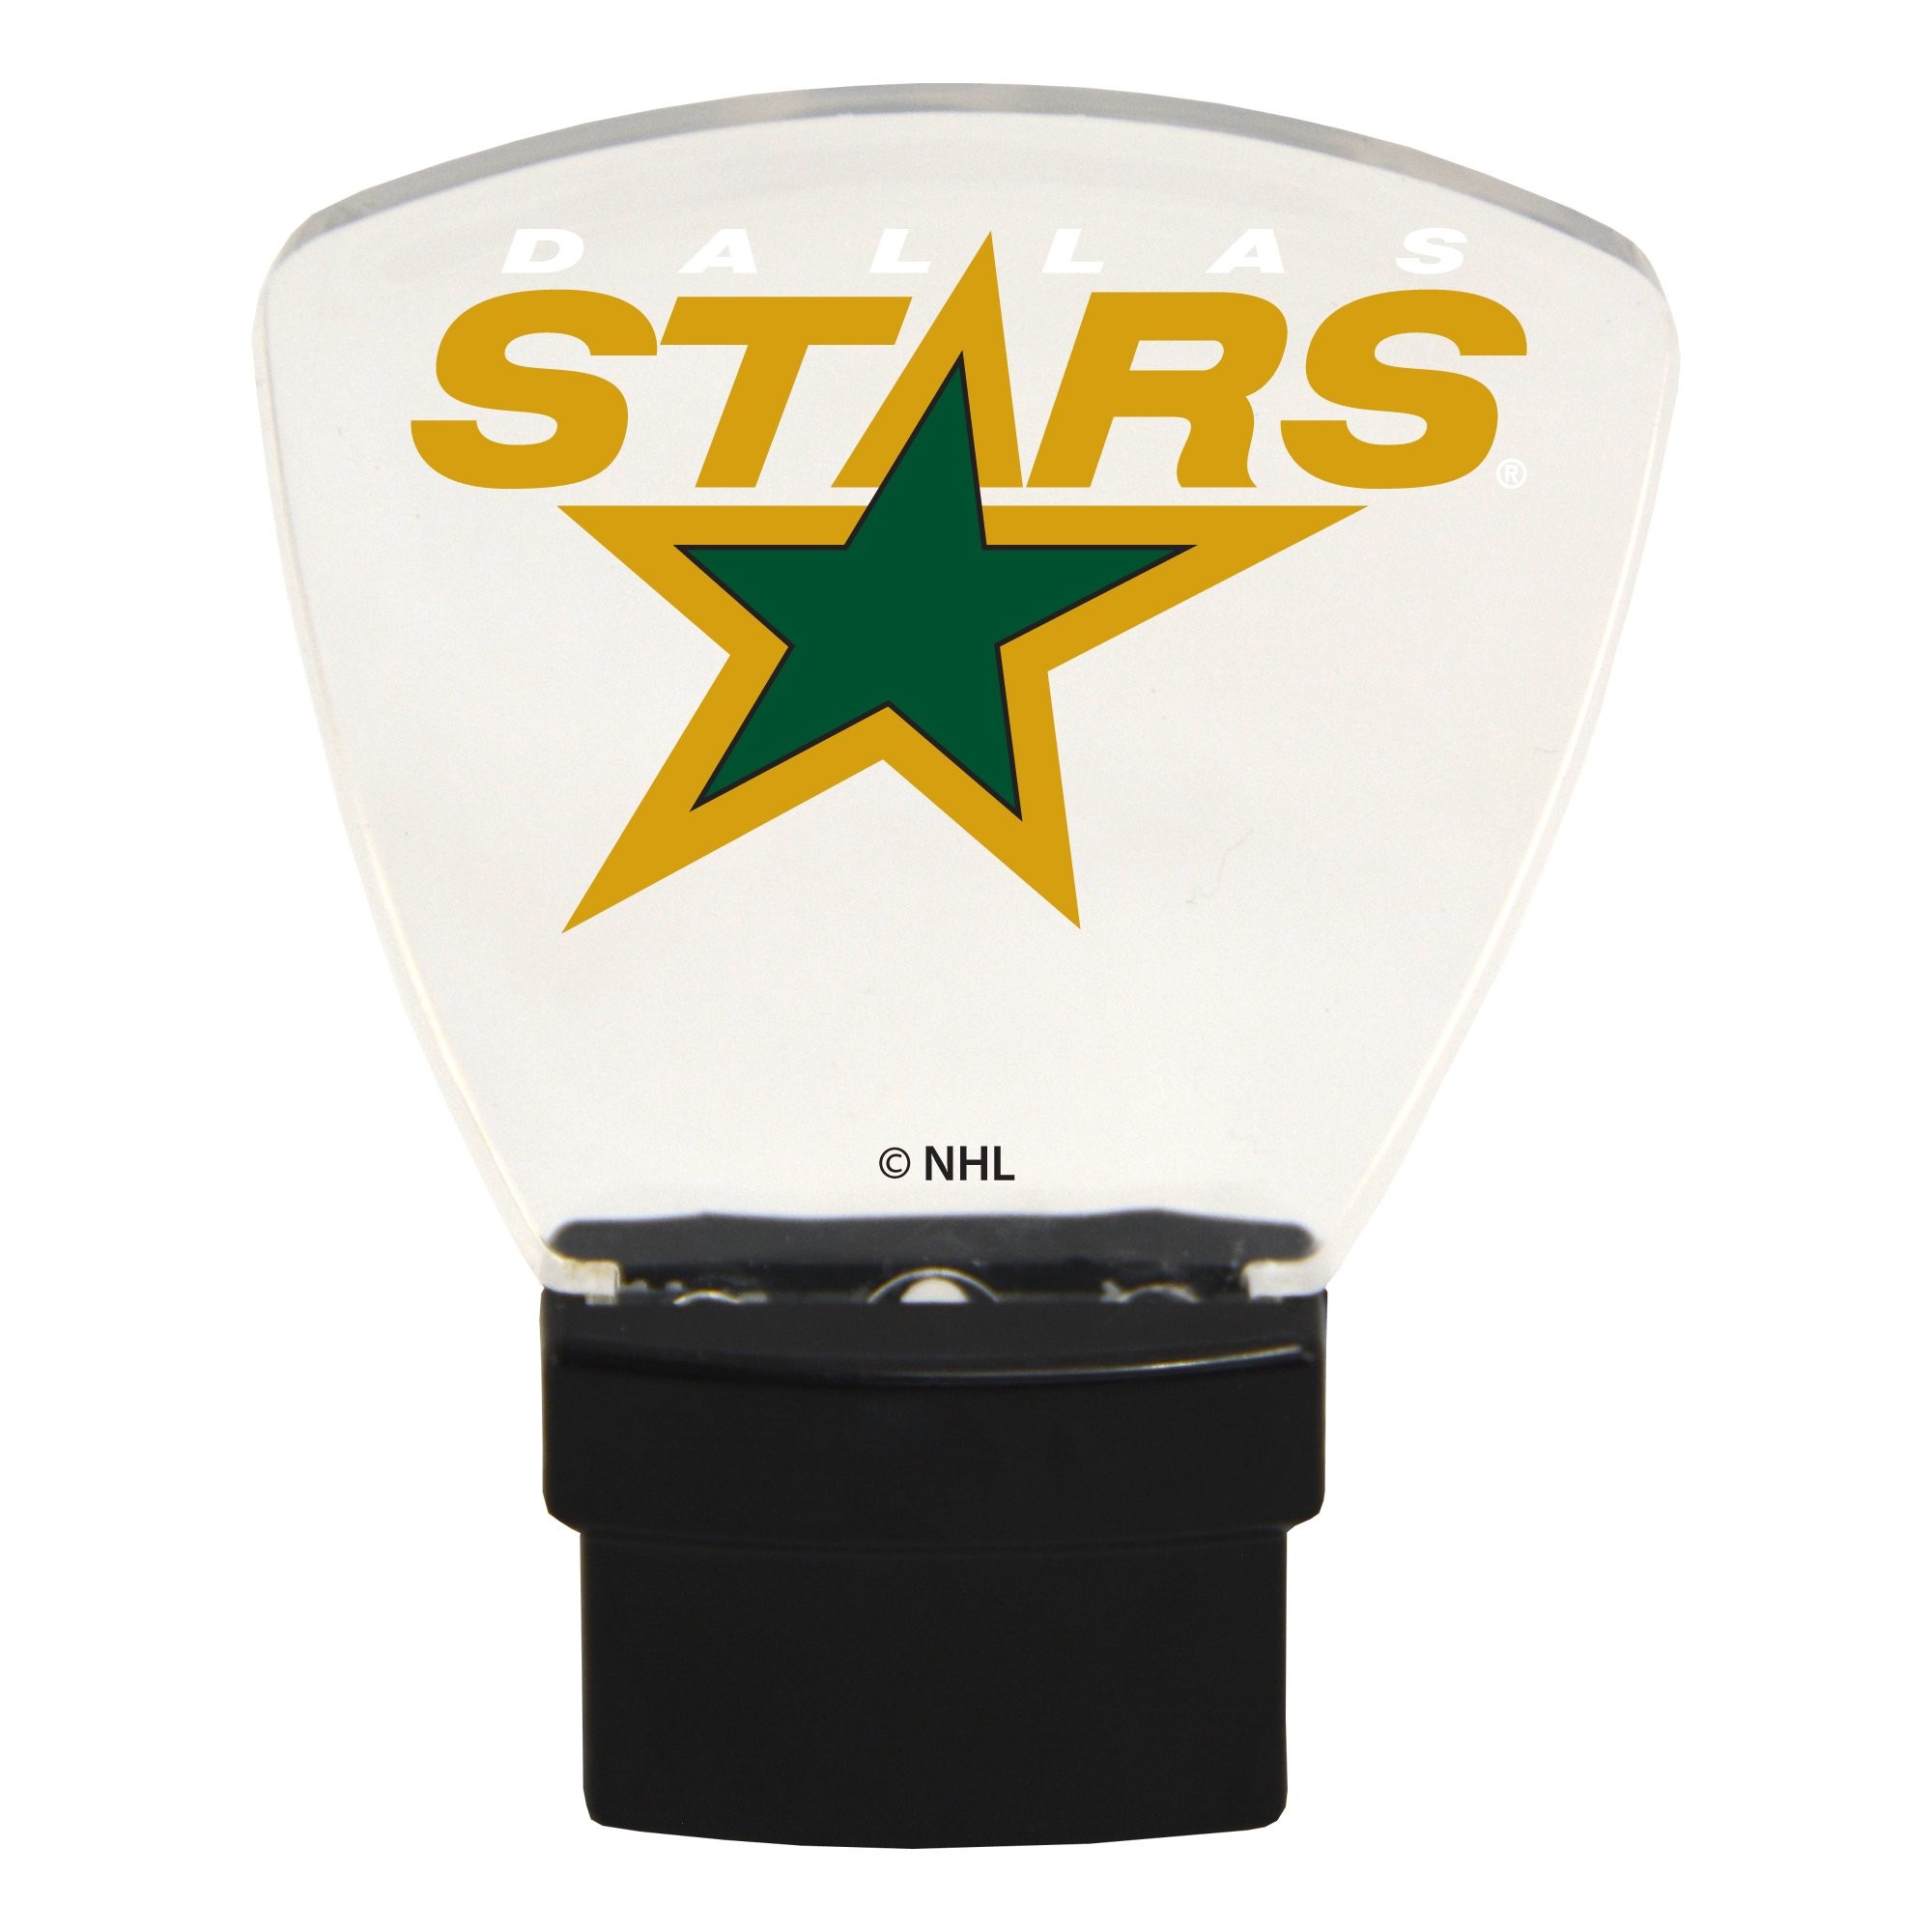 Authentic Street Signs NHL Officially Licensed-LED NIGHT LIGHT-Super Energy Efficient-Prime Power Saving 0.5 watt, Plug In-Great Sports Fan gift for Adults-Babies-Kids Room … (Dallas Stars)